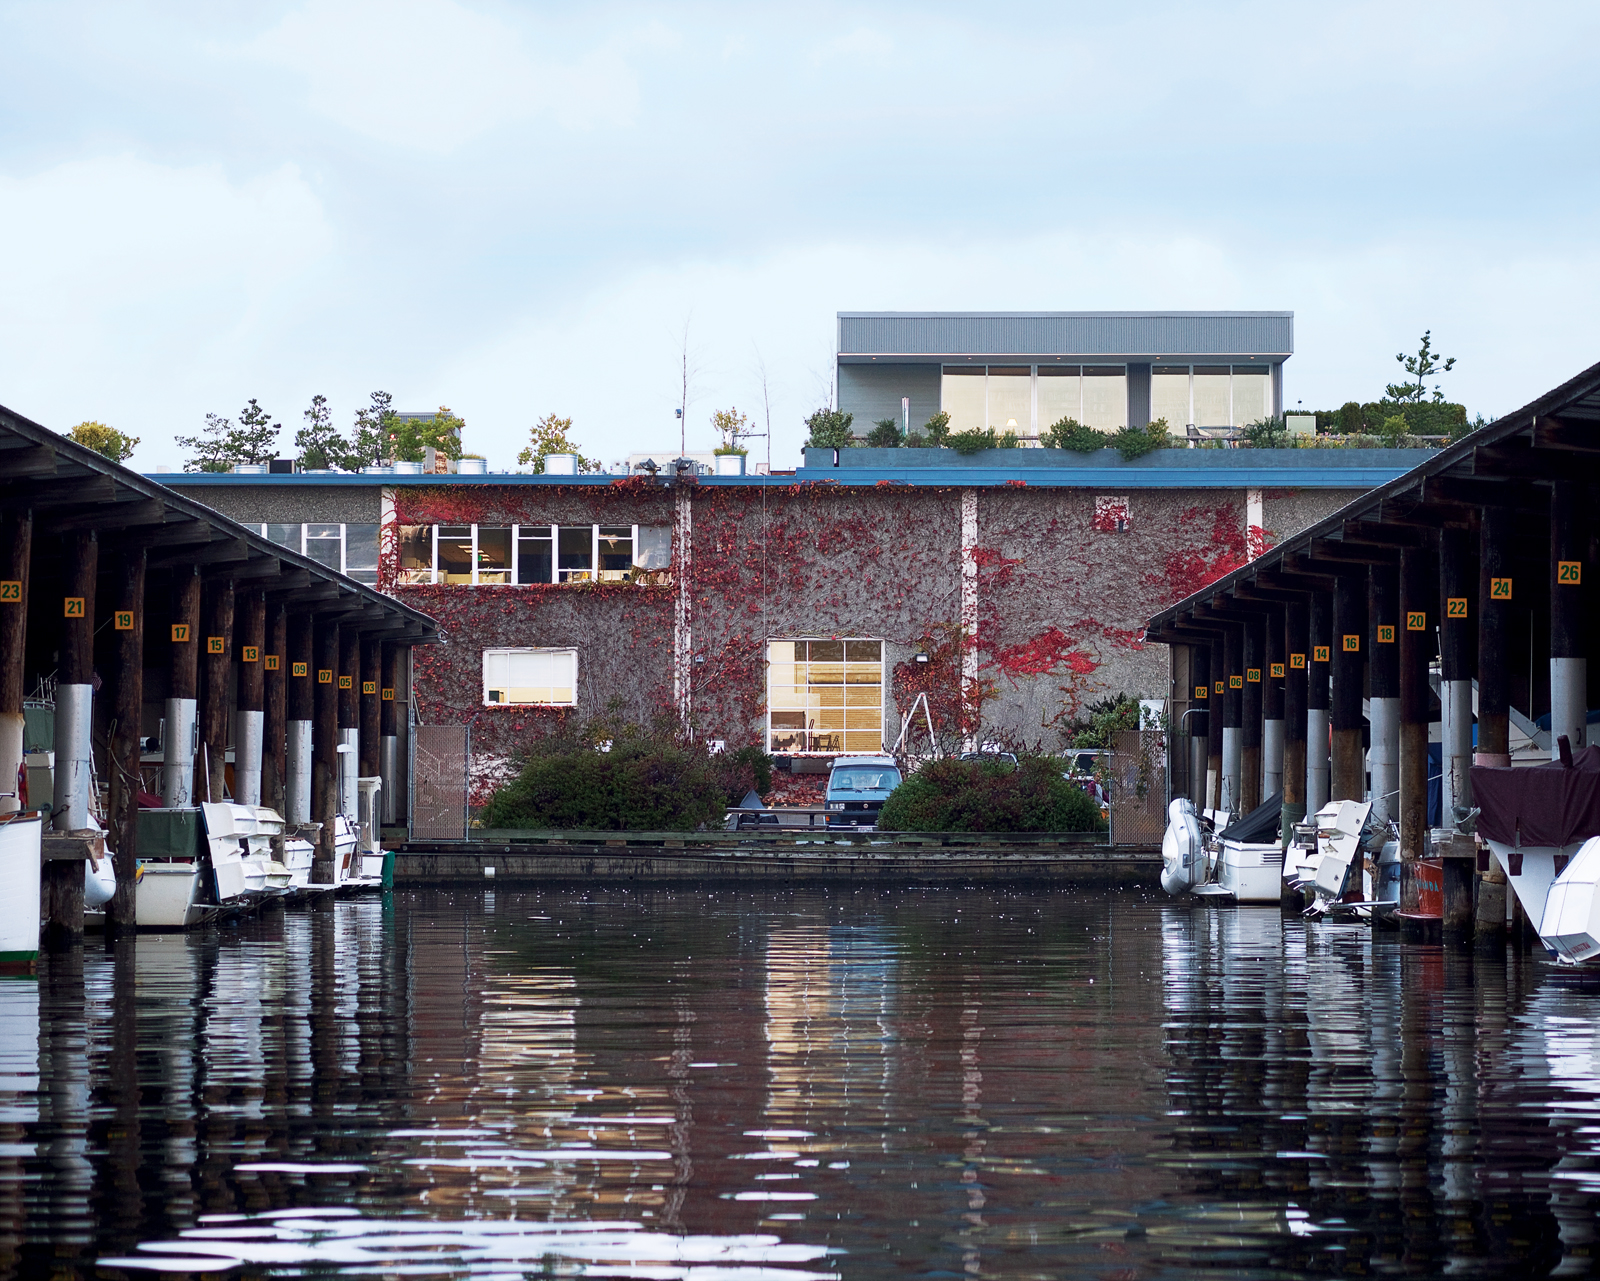 Atop a warehouse/office building overlooking Seattle's Salmon Bay waterway, Tom Bayley's home watches over a 250-slip marina. Few tenants below notice his presence, except when errant drops from his watering can fall from his deck, 25 feet above.